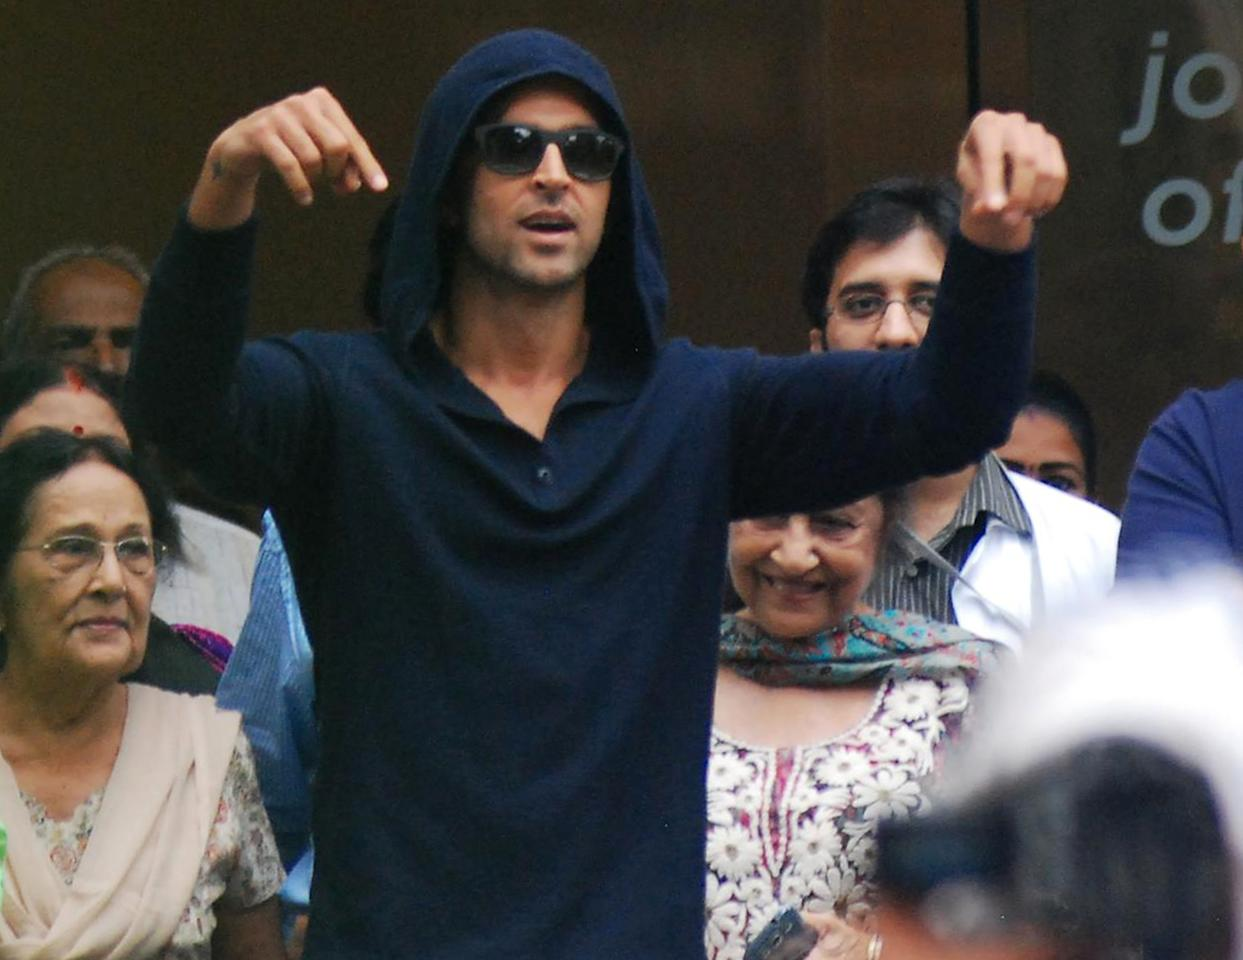 8: Hrithik Roshan has 27.3 million followers